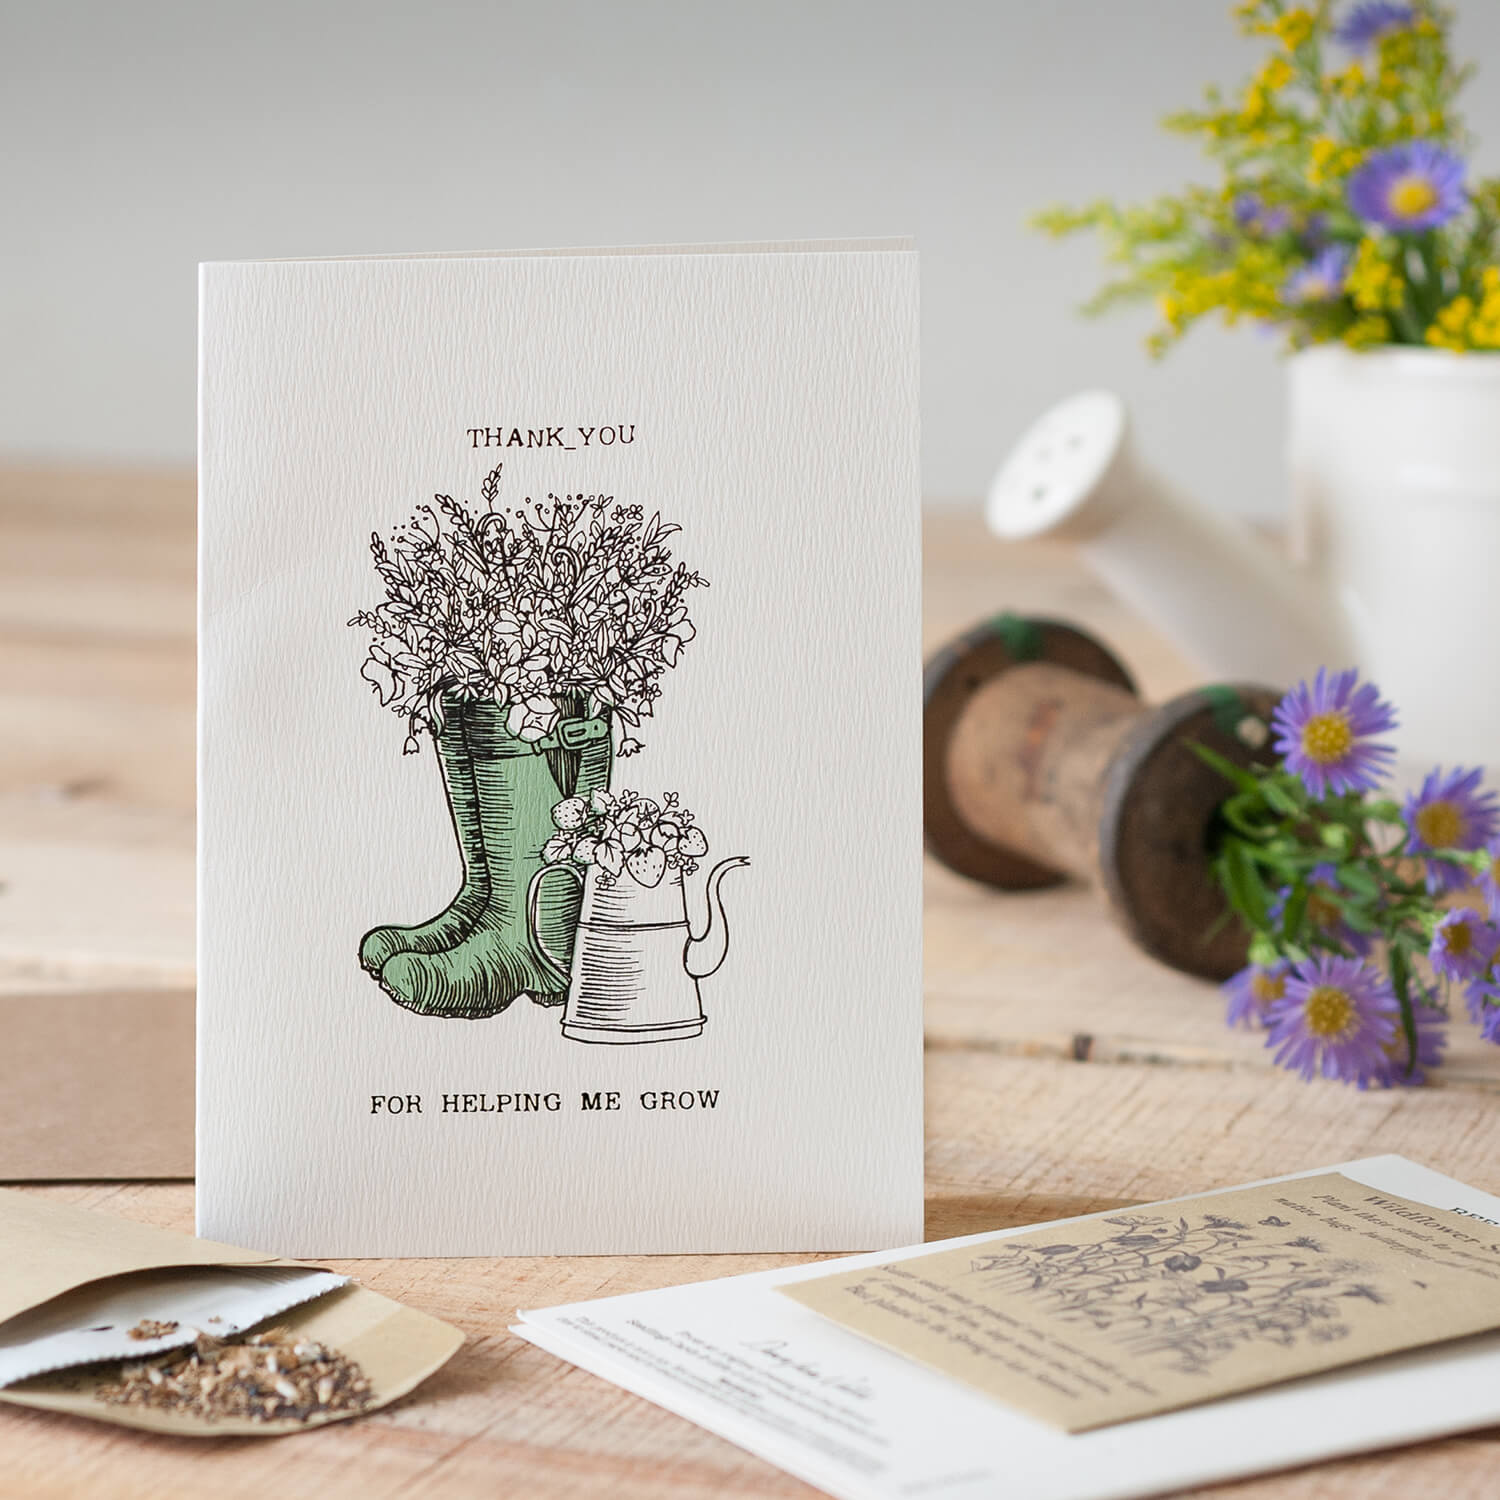 Single product photograph of a greetings card using fresh flowers and rustic items as props